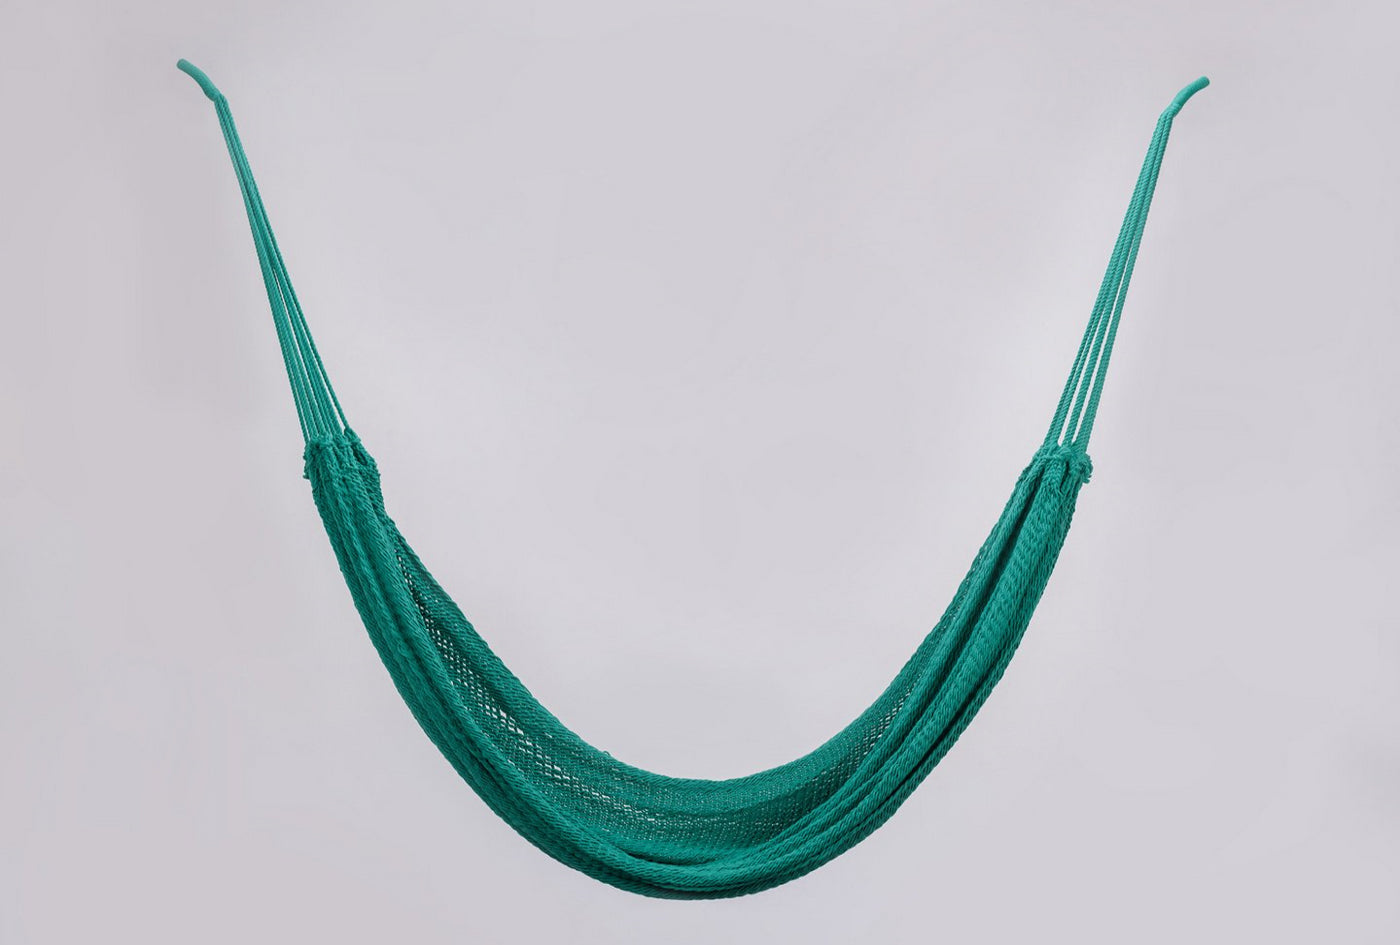 Luxury High End Hammock Handwoven Organic Cotton Spectrum Teal Green